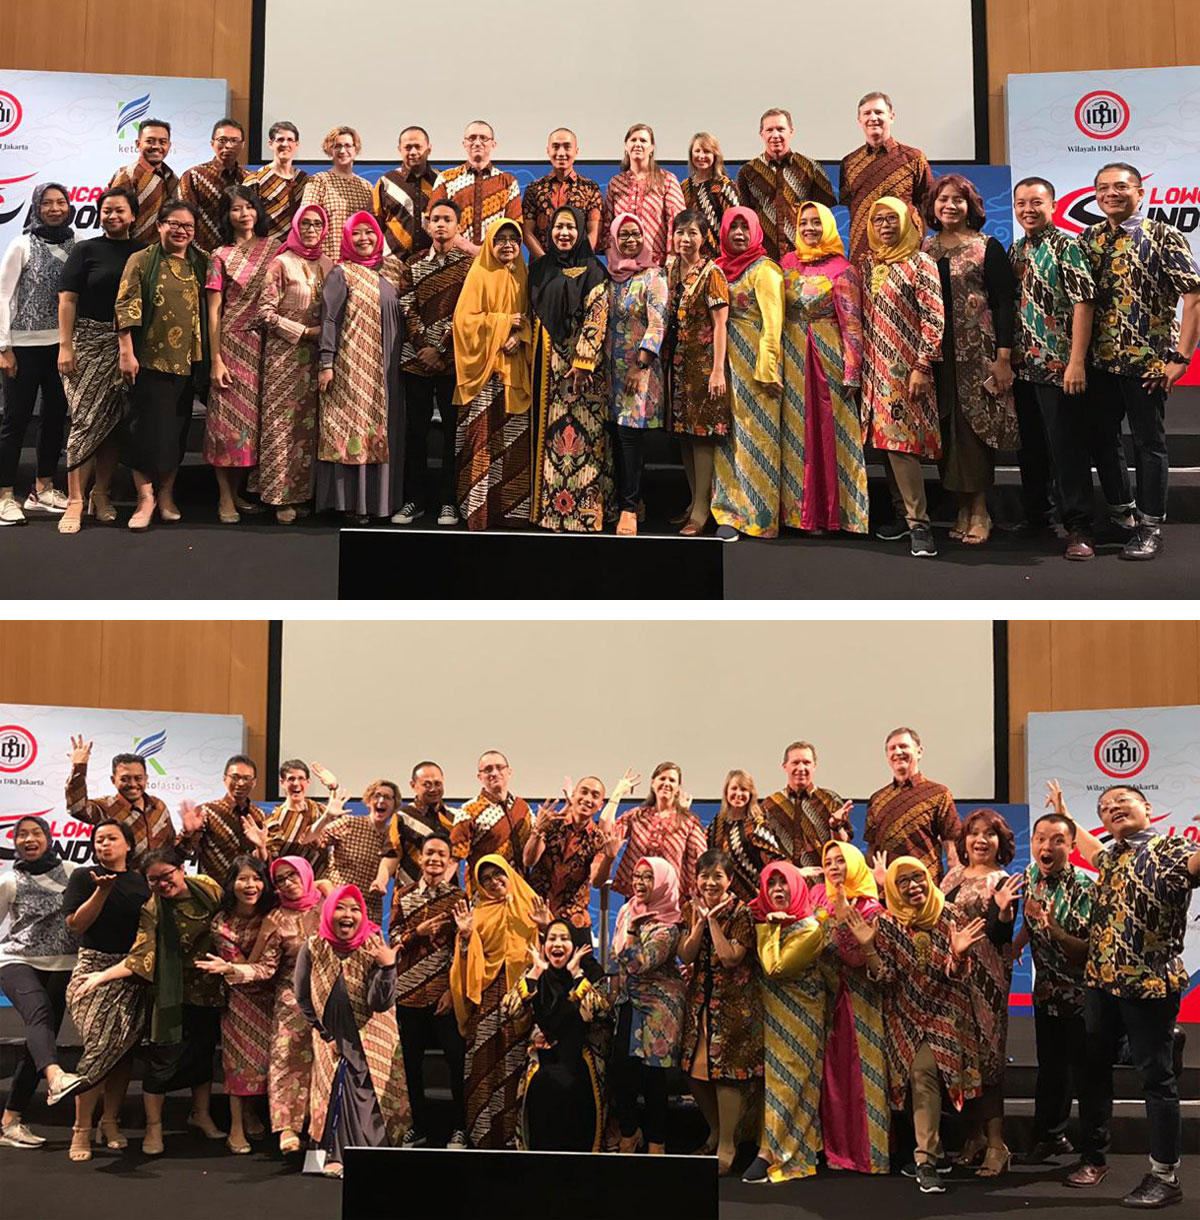 Low Carb Indonesia conference—speakers and organizers